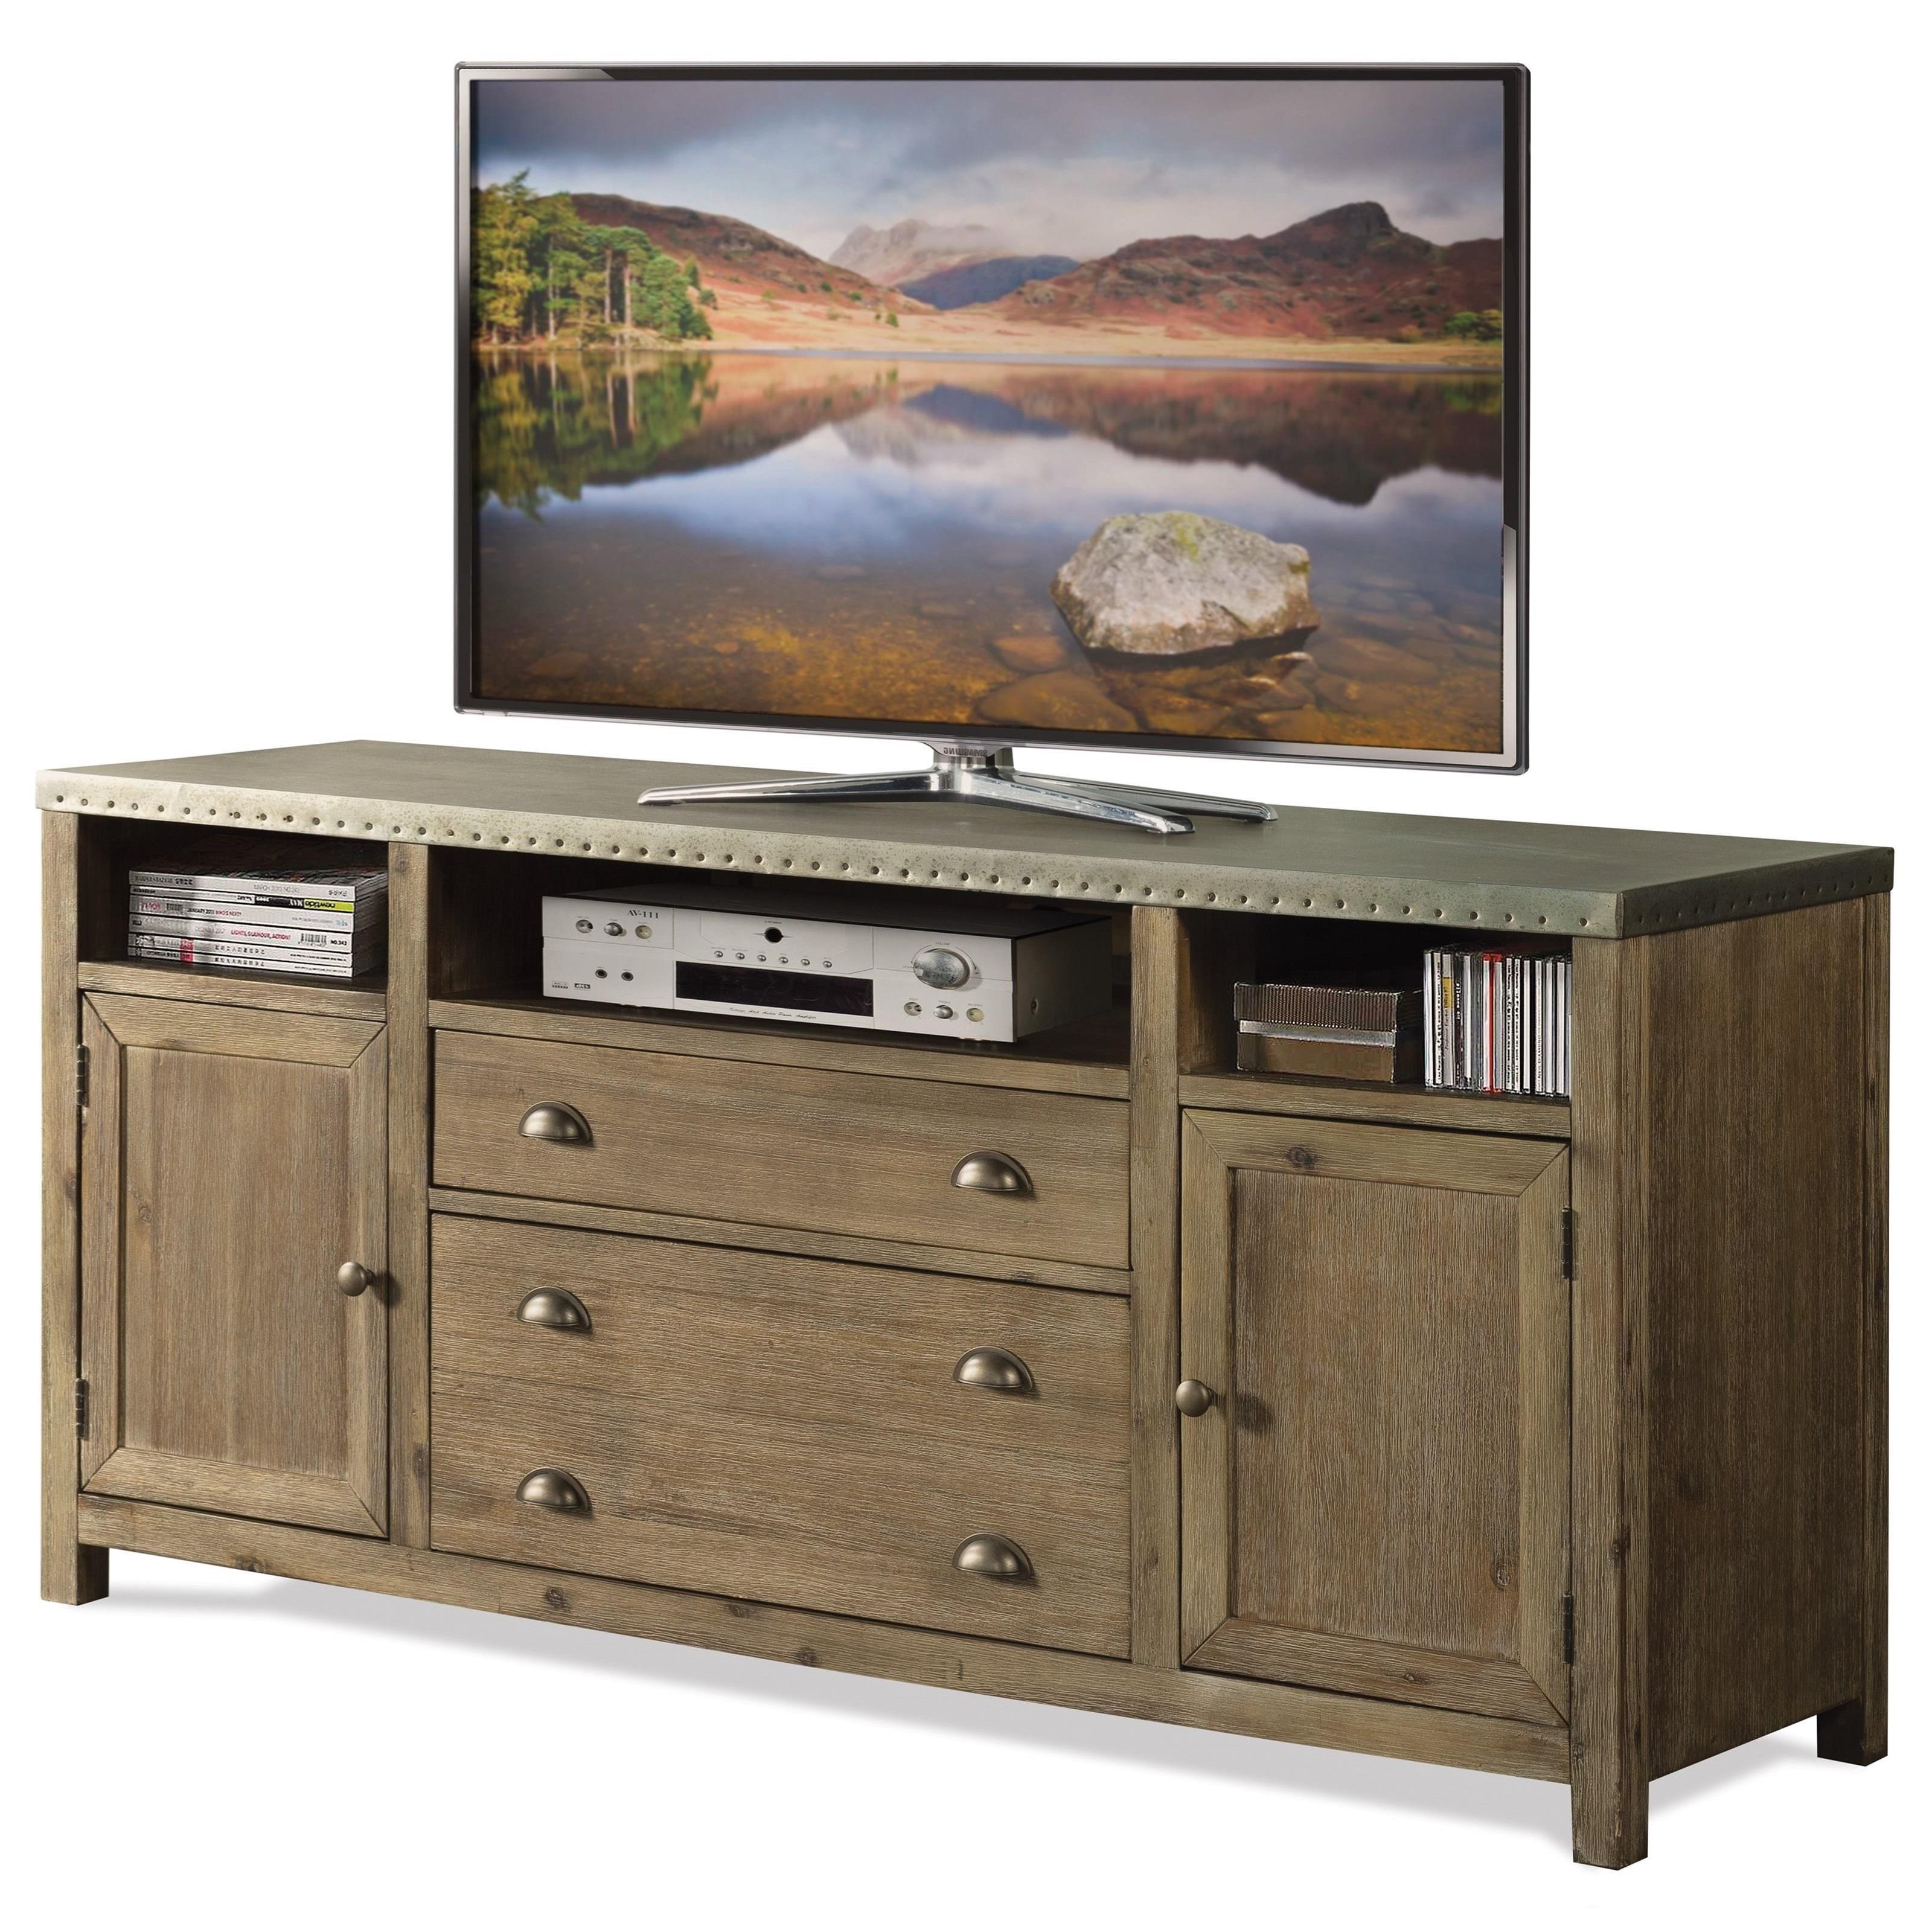 Rowan 64 Inch Tv Stands With Regard To Well Known Riverside Furniture Liam 71142 Industrial 64 Inch Tv Console With (View 12 of 20)